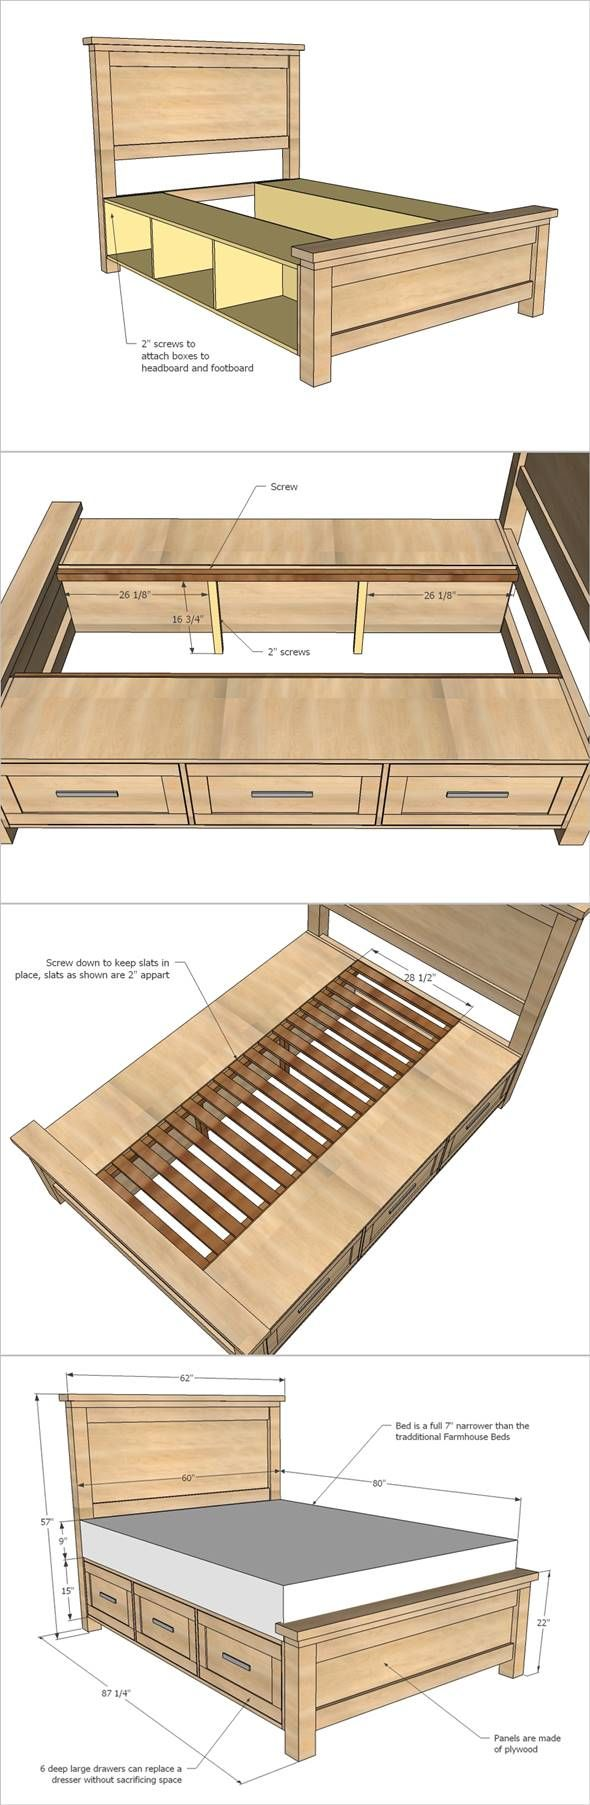 Bed frames with storage plans - Creative Ideas How To Build A Farmhouse Storage Bed With Drawers